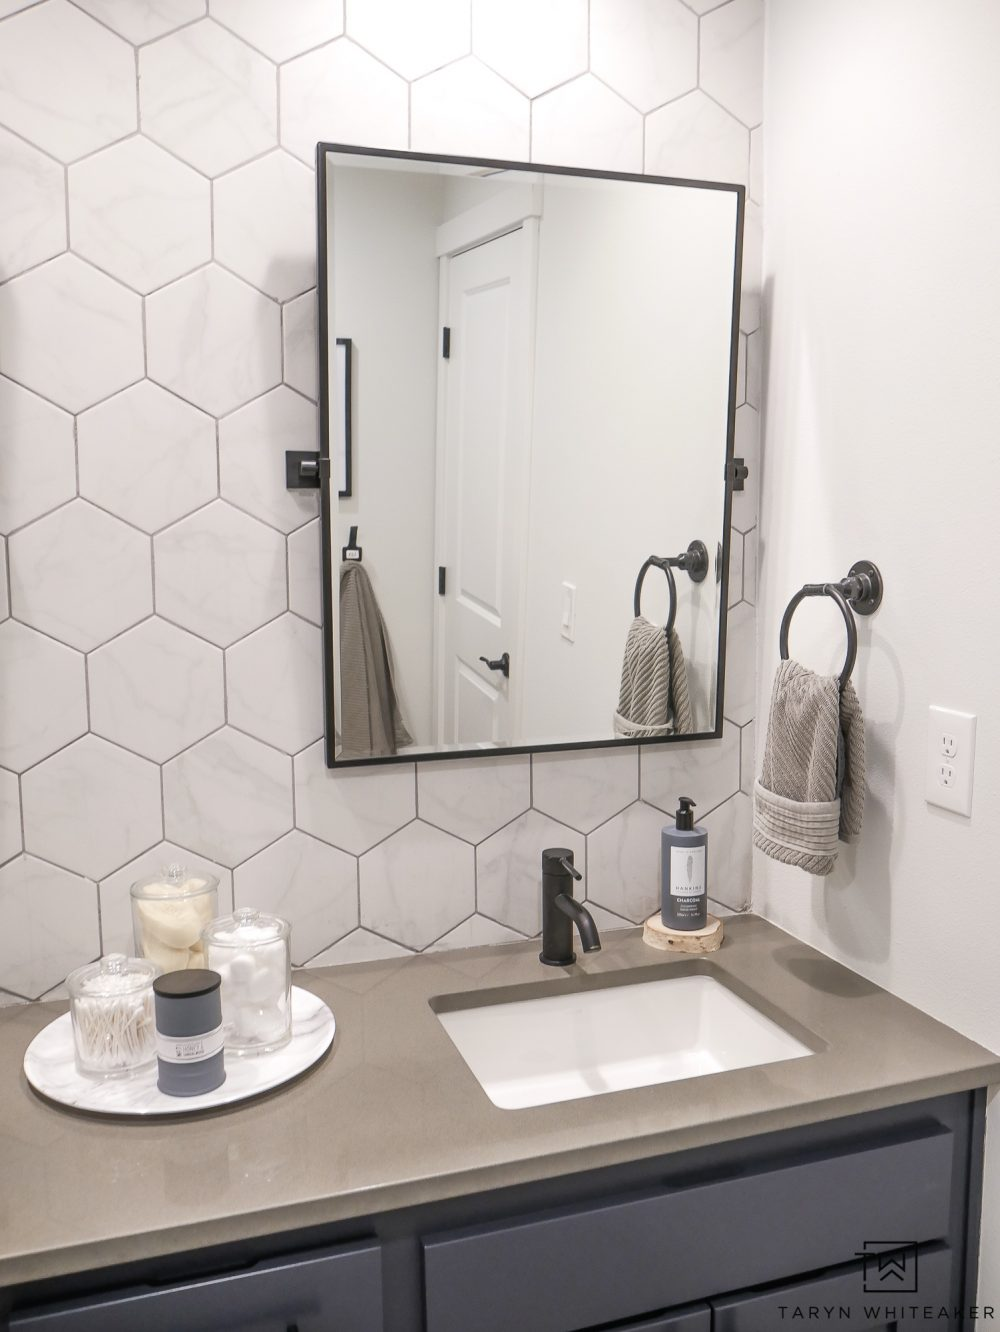 Come see what this bathroom looked like before! This double sink vanity was just a basic builder grade and now it has it's own custom modern look with marble looking hexagon tile, black pivot mirrors and charcoal blue cabinets!